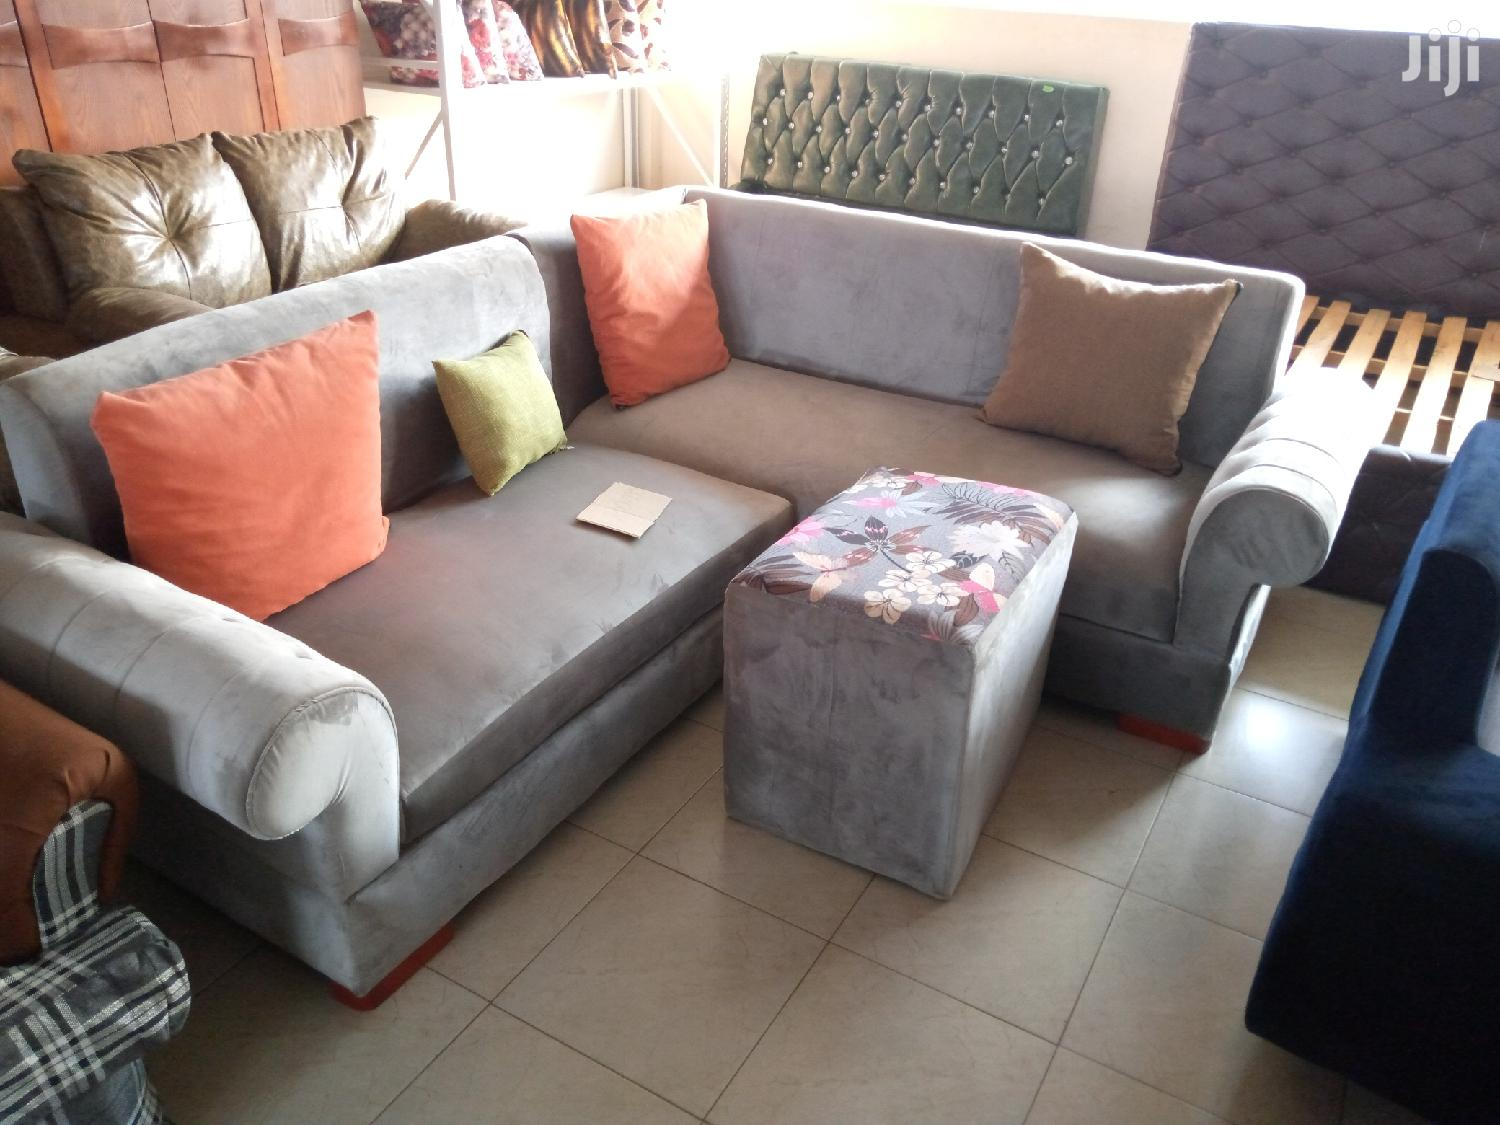 Picture of: P Arm Rest Min L Sofa In Grey With Otto Center Table In Kampala Furniture Alendander Alex Jiji Ug For Sale In Kampala Buy Furniture From Alendander Alex On Jiji Ug